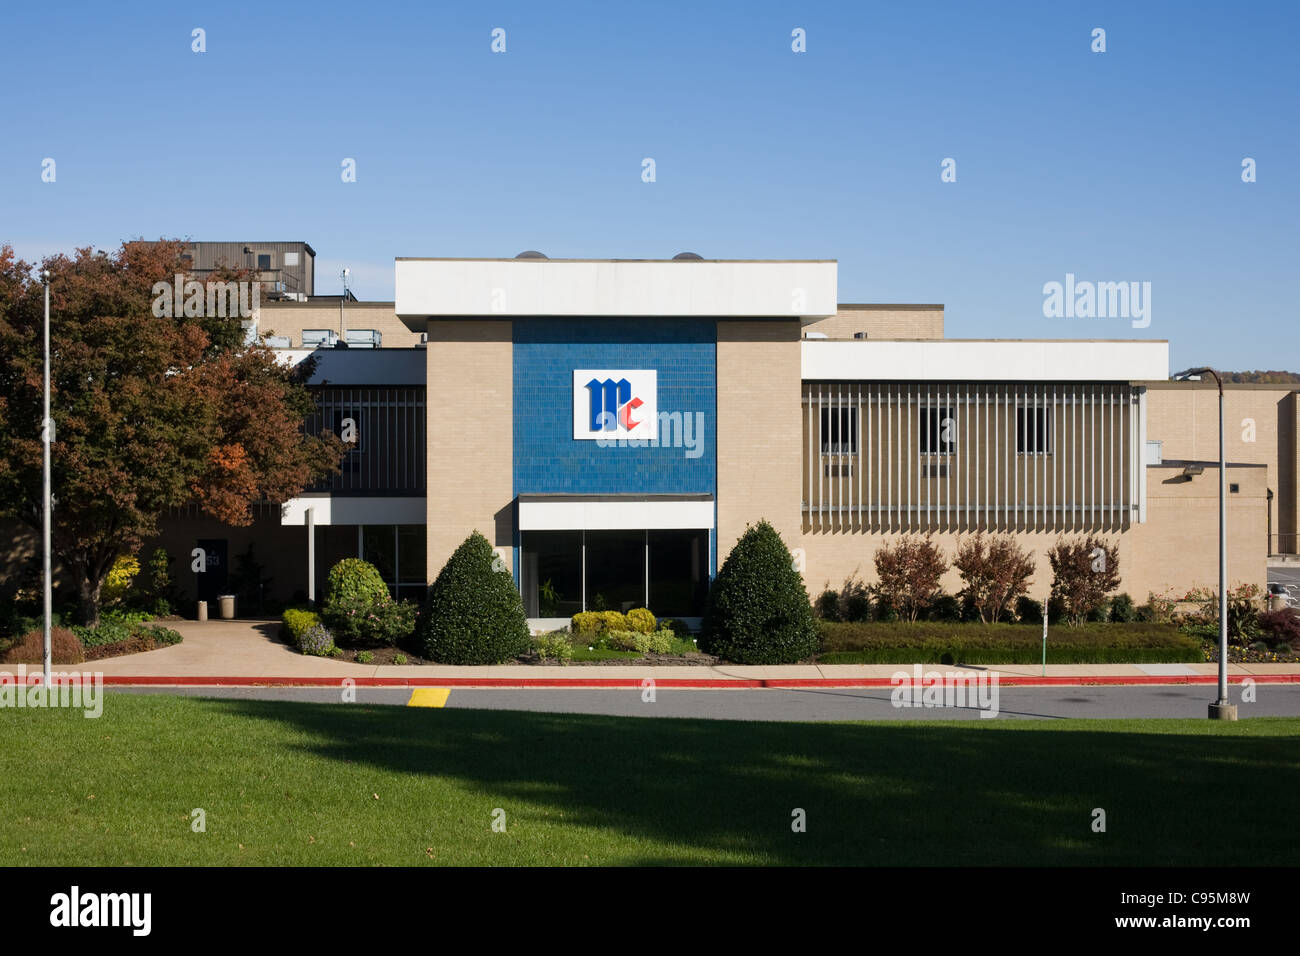 McCormick and Company Corporate Headquarters of Consumer Products Division, Hunt Valley, Maryland - Stock Image